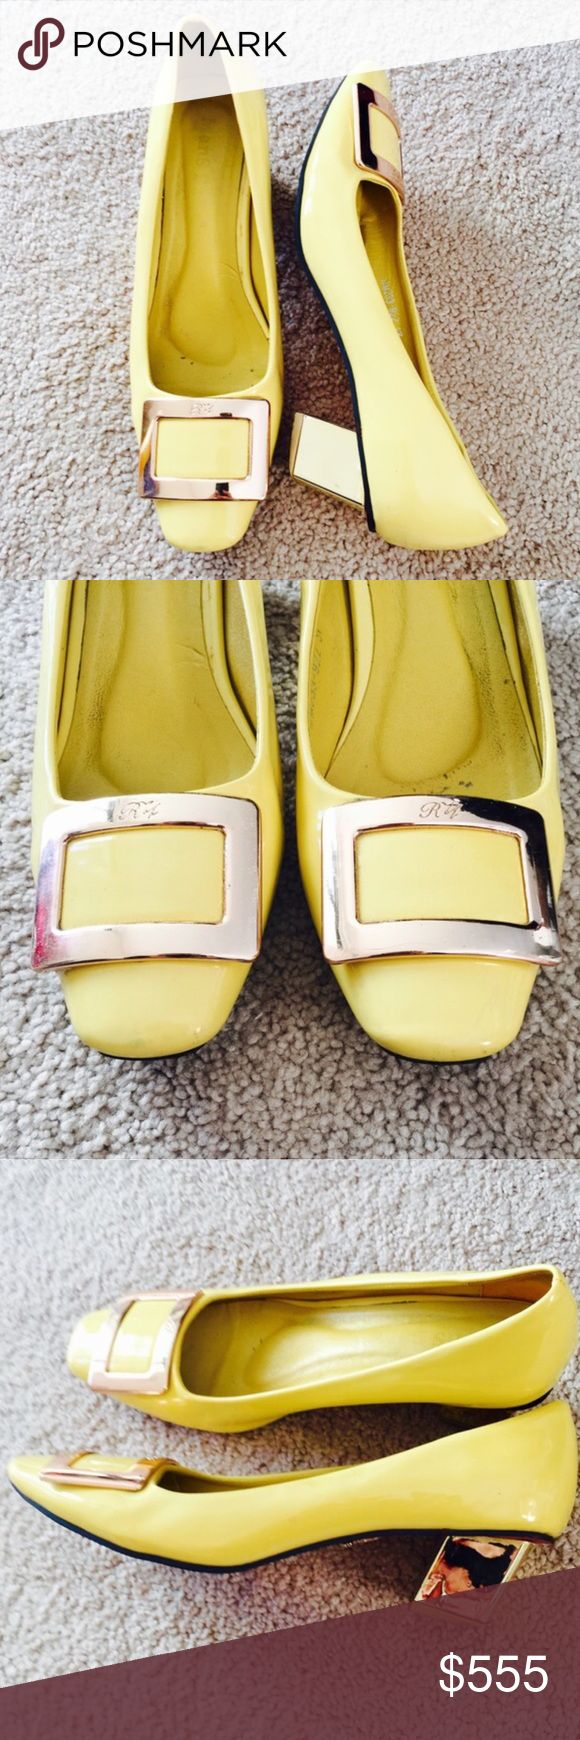 ❗️Saks Fifth Ave Roger Vivier Gold Heels MSRP $780 ❗️Saks Fifth Avenue Roger Vivier Mans Bale Hold & Yellow Heels. Retails $780. Size 7. On good condition! Some wear as shown factored into price. Make an offer! My New Year Sale ends TODAY--giving to the first reasonable offer I receive so feel free to make an offer! Enjoy discounts on bundles! Asap shipping ;-) Saks Fifth Avenue Shoes Heels